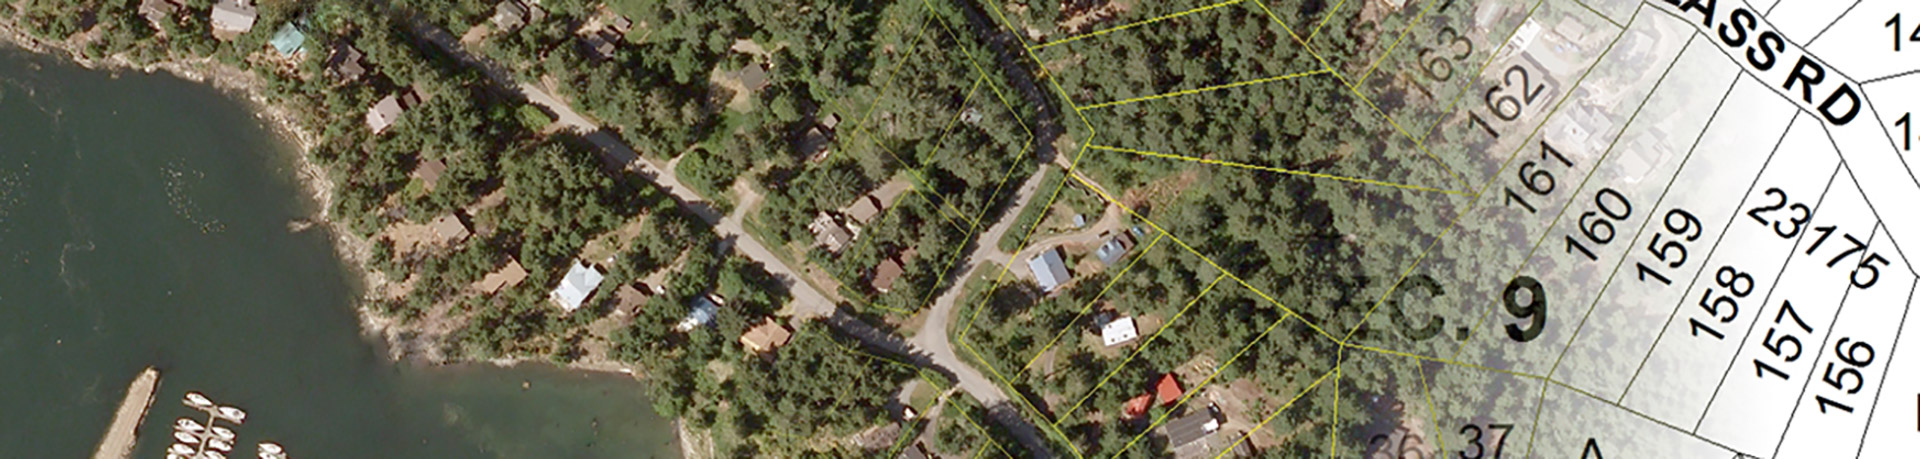 Aerial photo of a neighbourhood in the trees with coordinates overlaid on the image